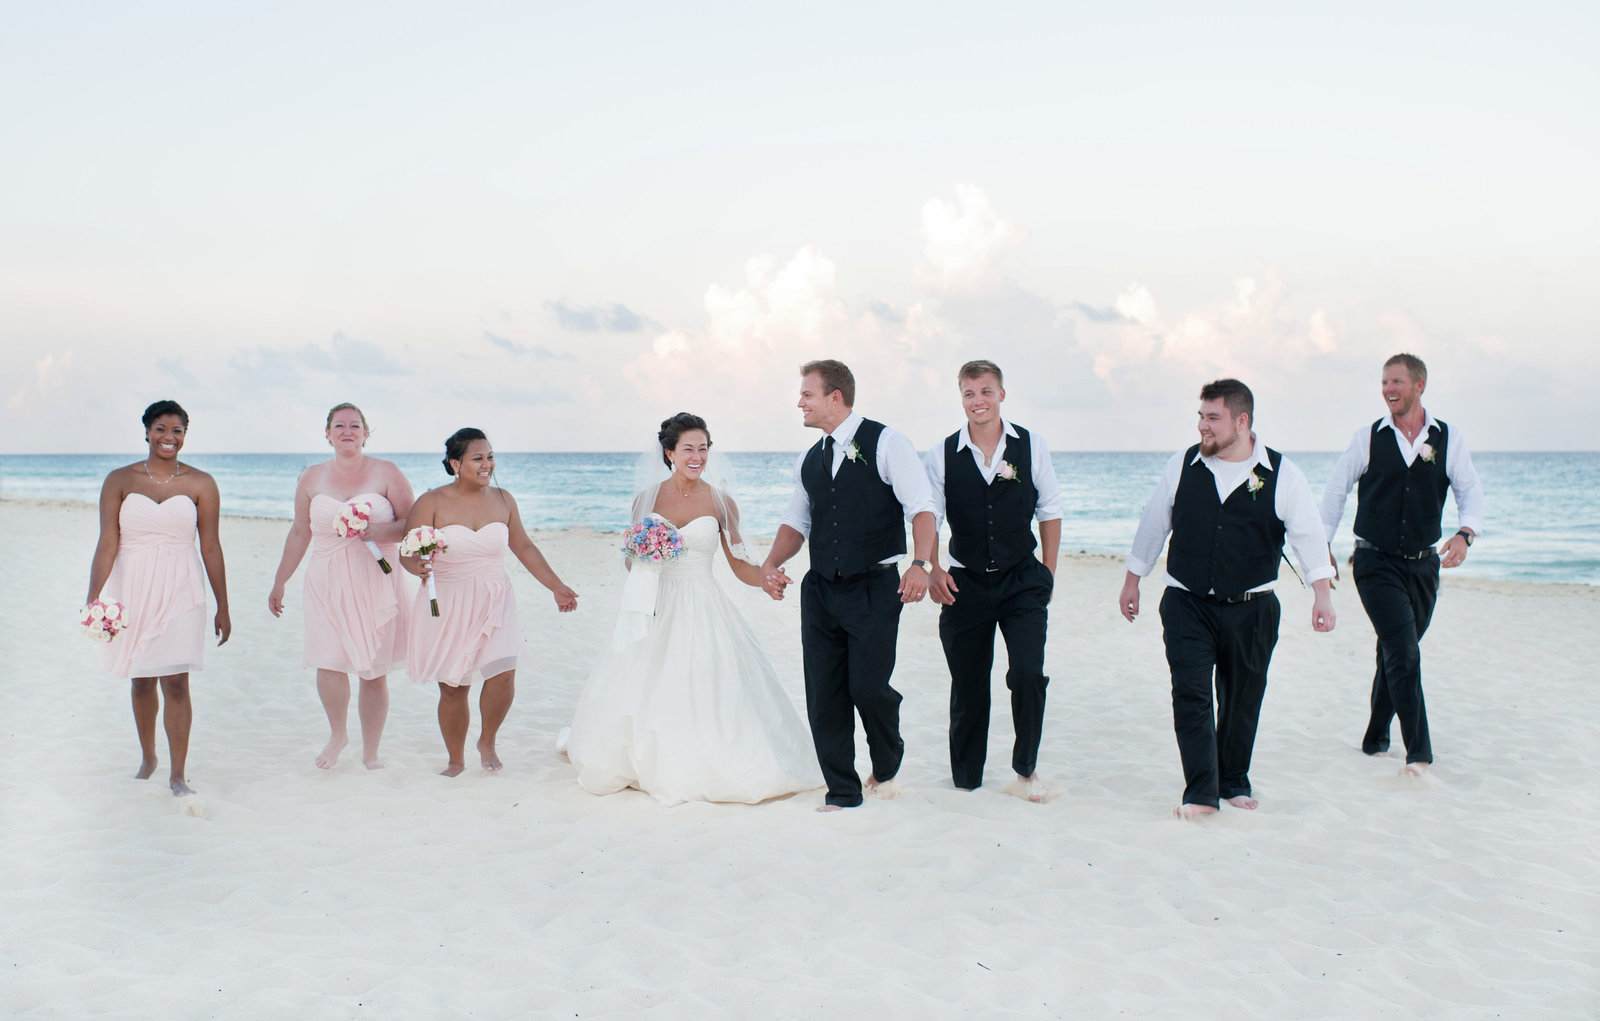 Jessica-Frey-Photography-Cancun-Beach-Wedding-093